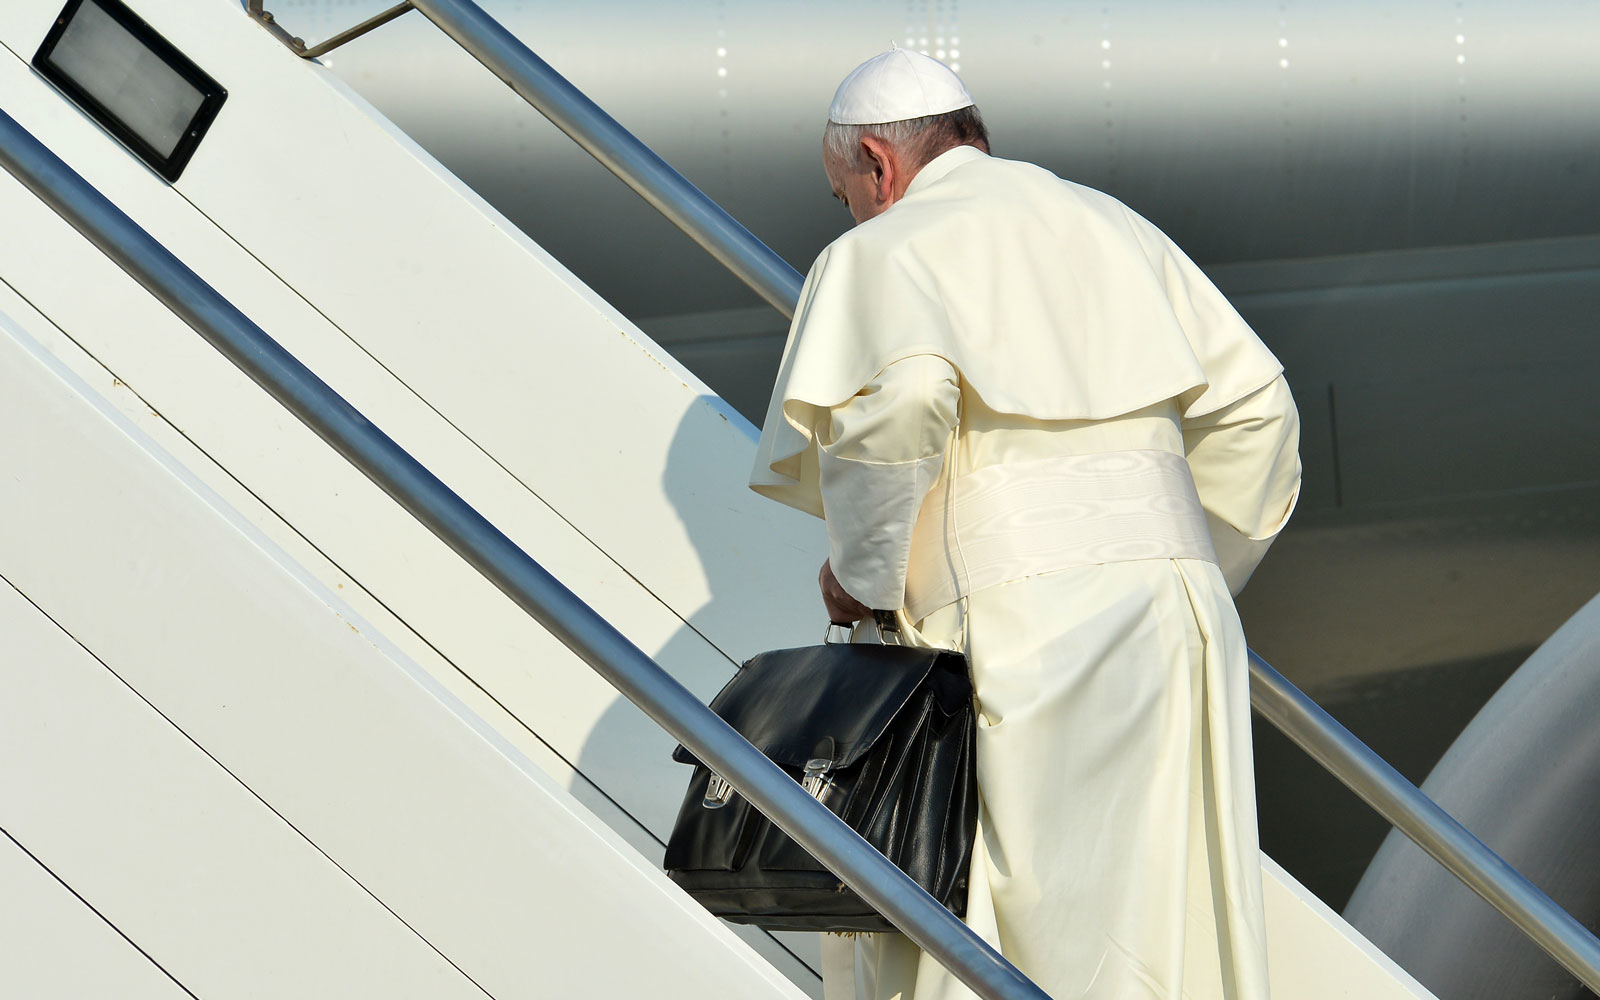 Pope Francis carry on bag